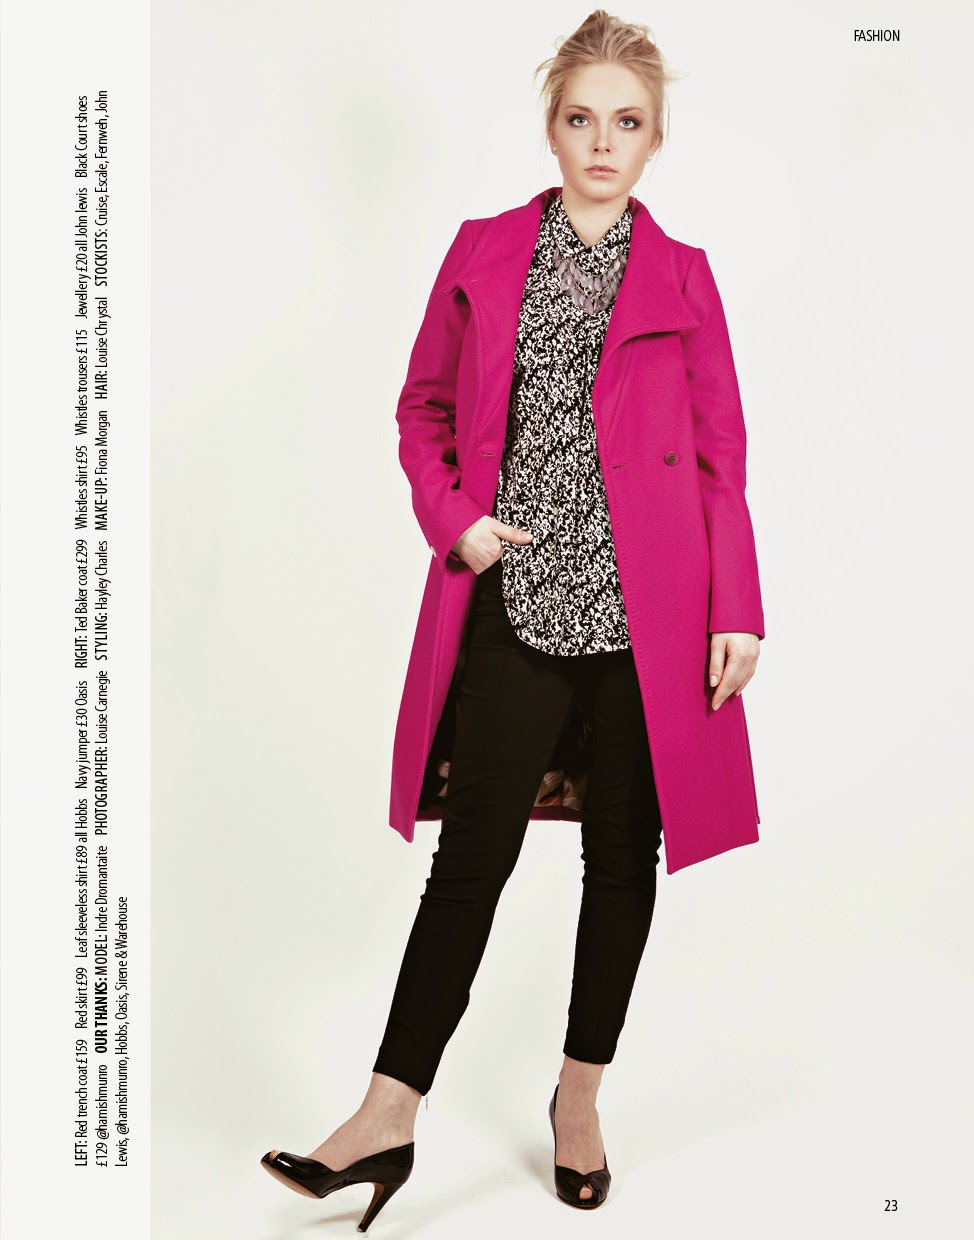 Girl models spring 2015 fashion for Trend Magazine, Aberdeen